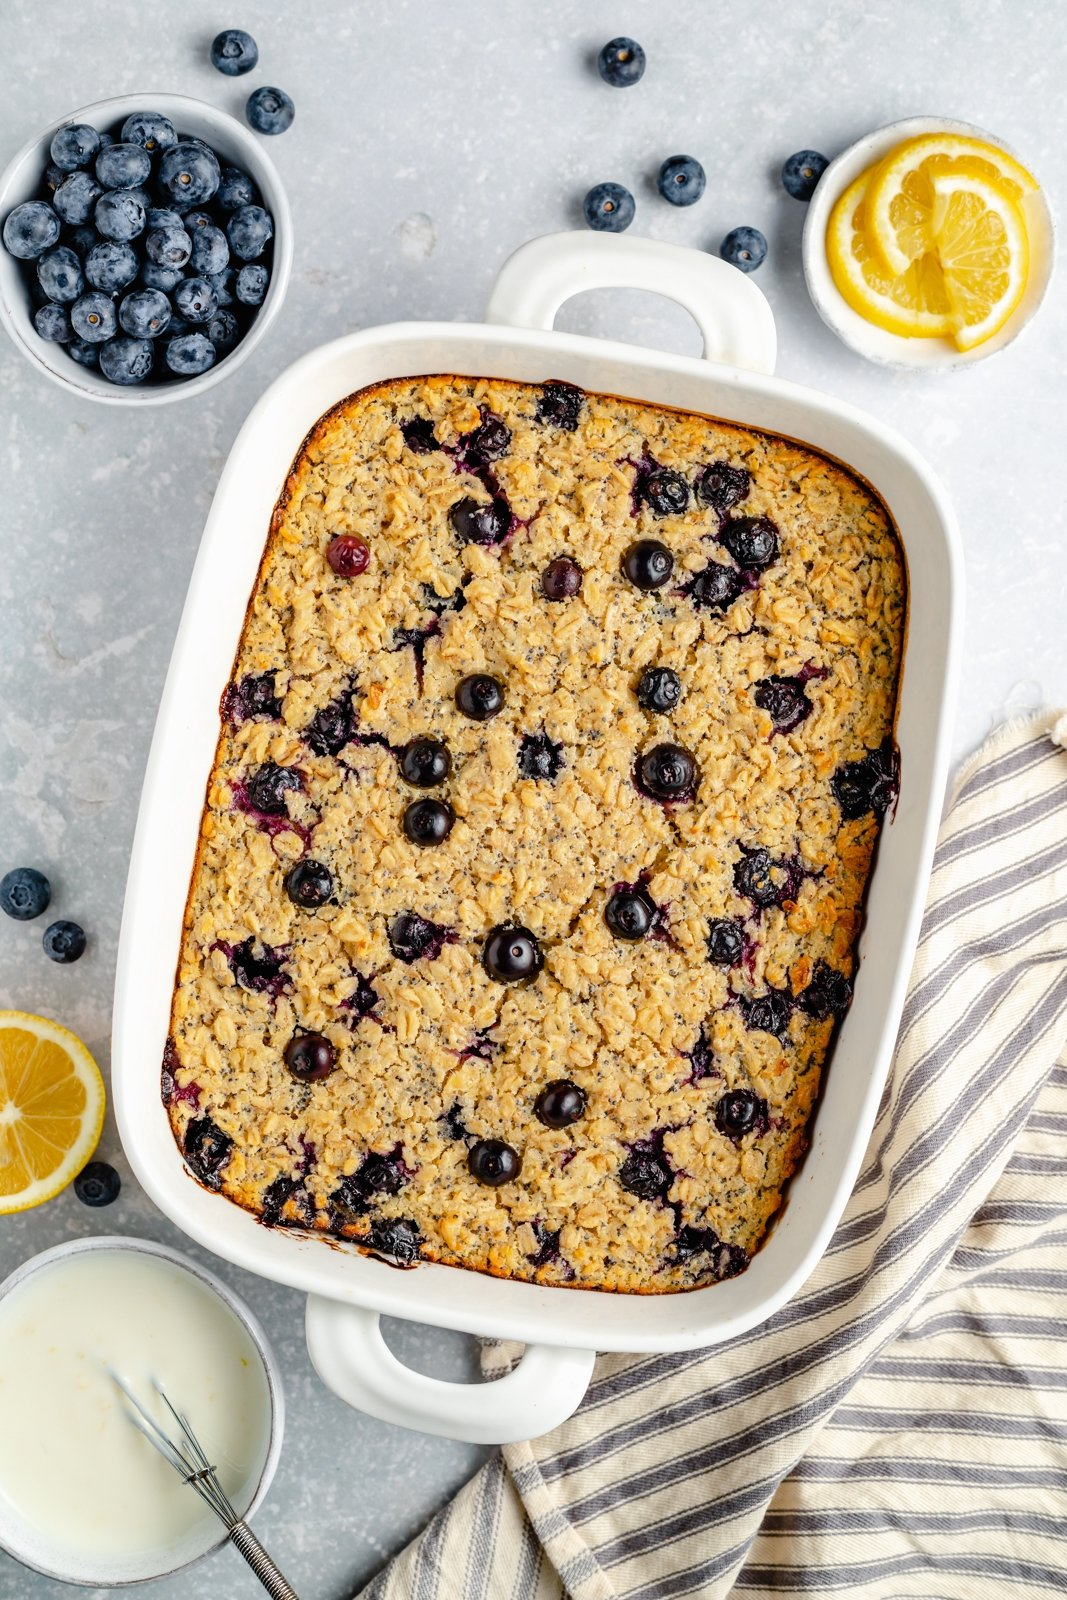 blueberry baked oatmeal in a baking dish